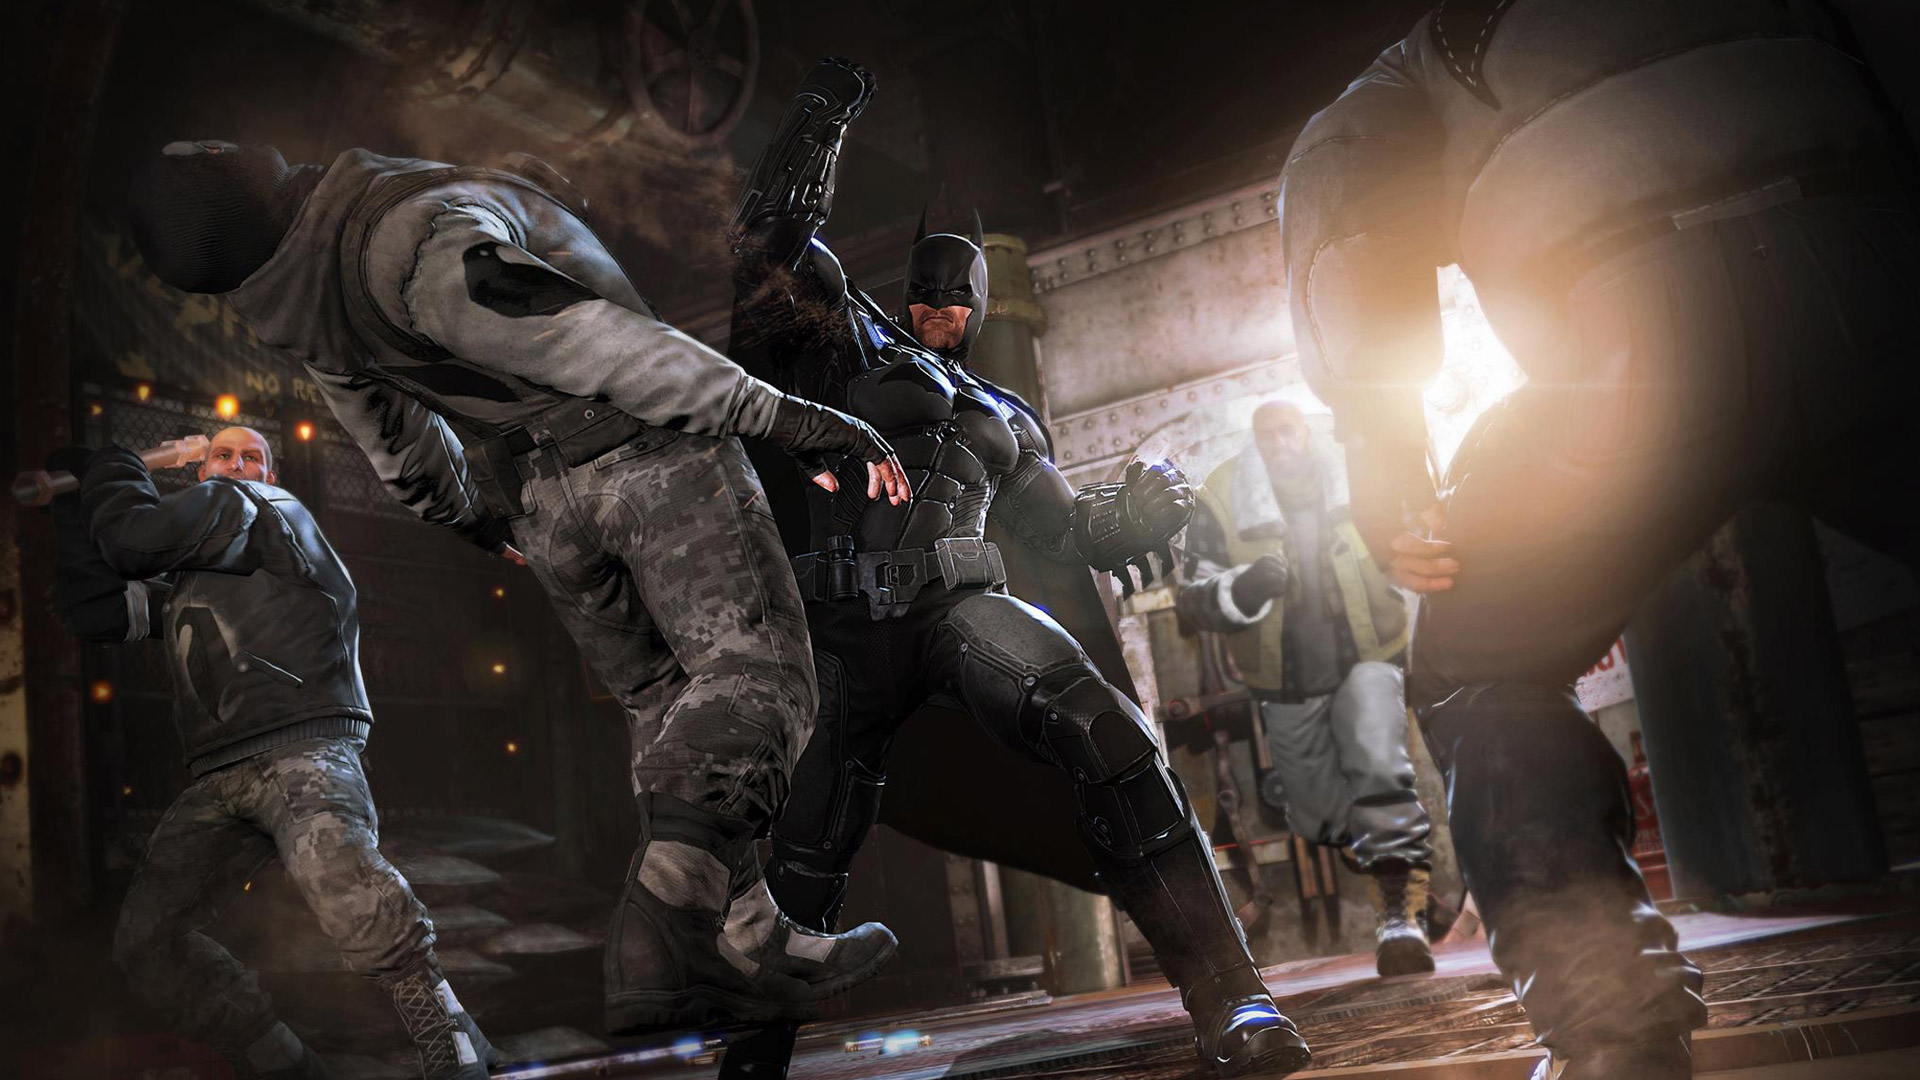 Batman: Arkham Origins Wallpaper in 1920x1080